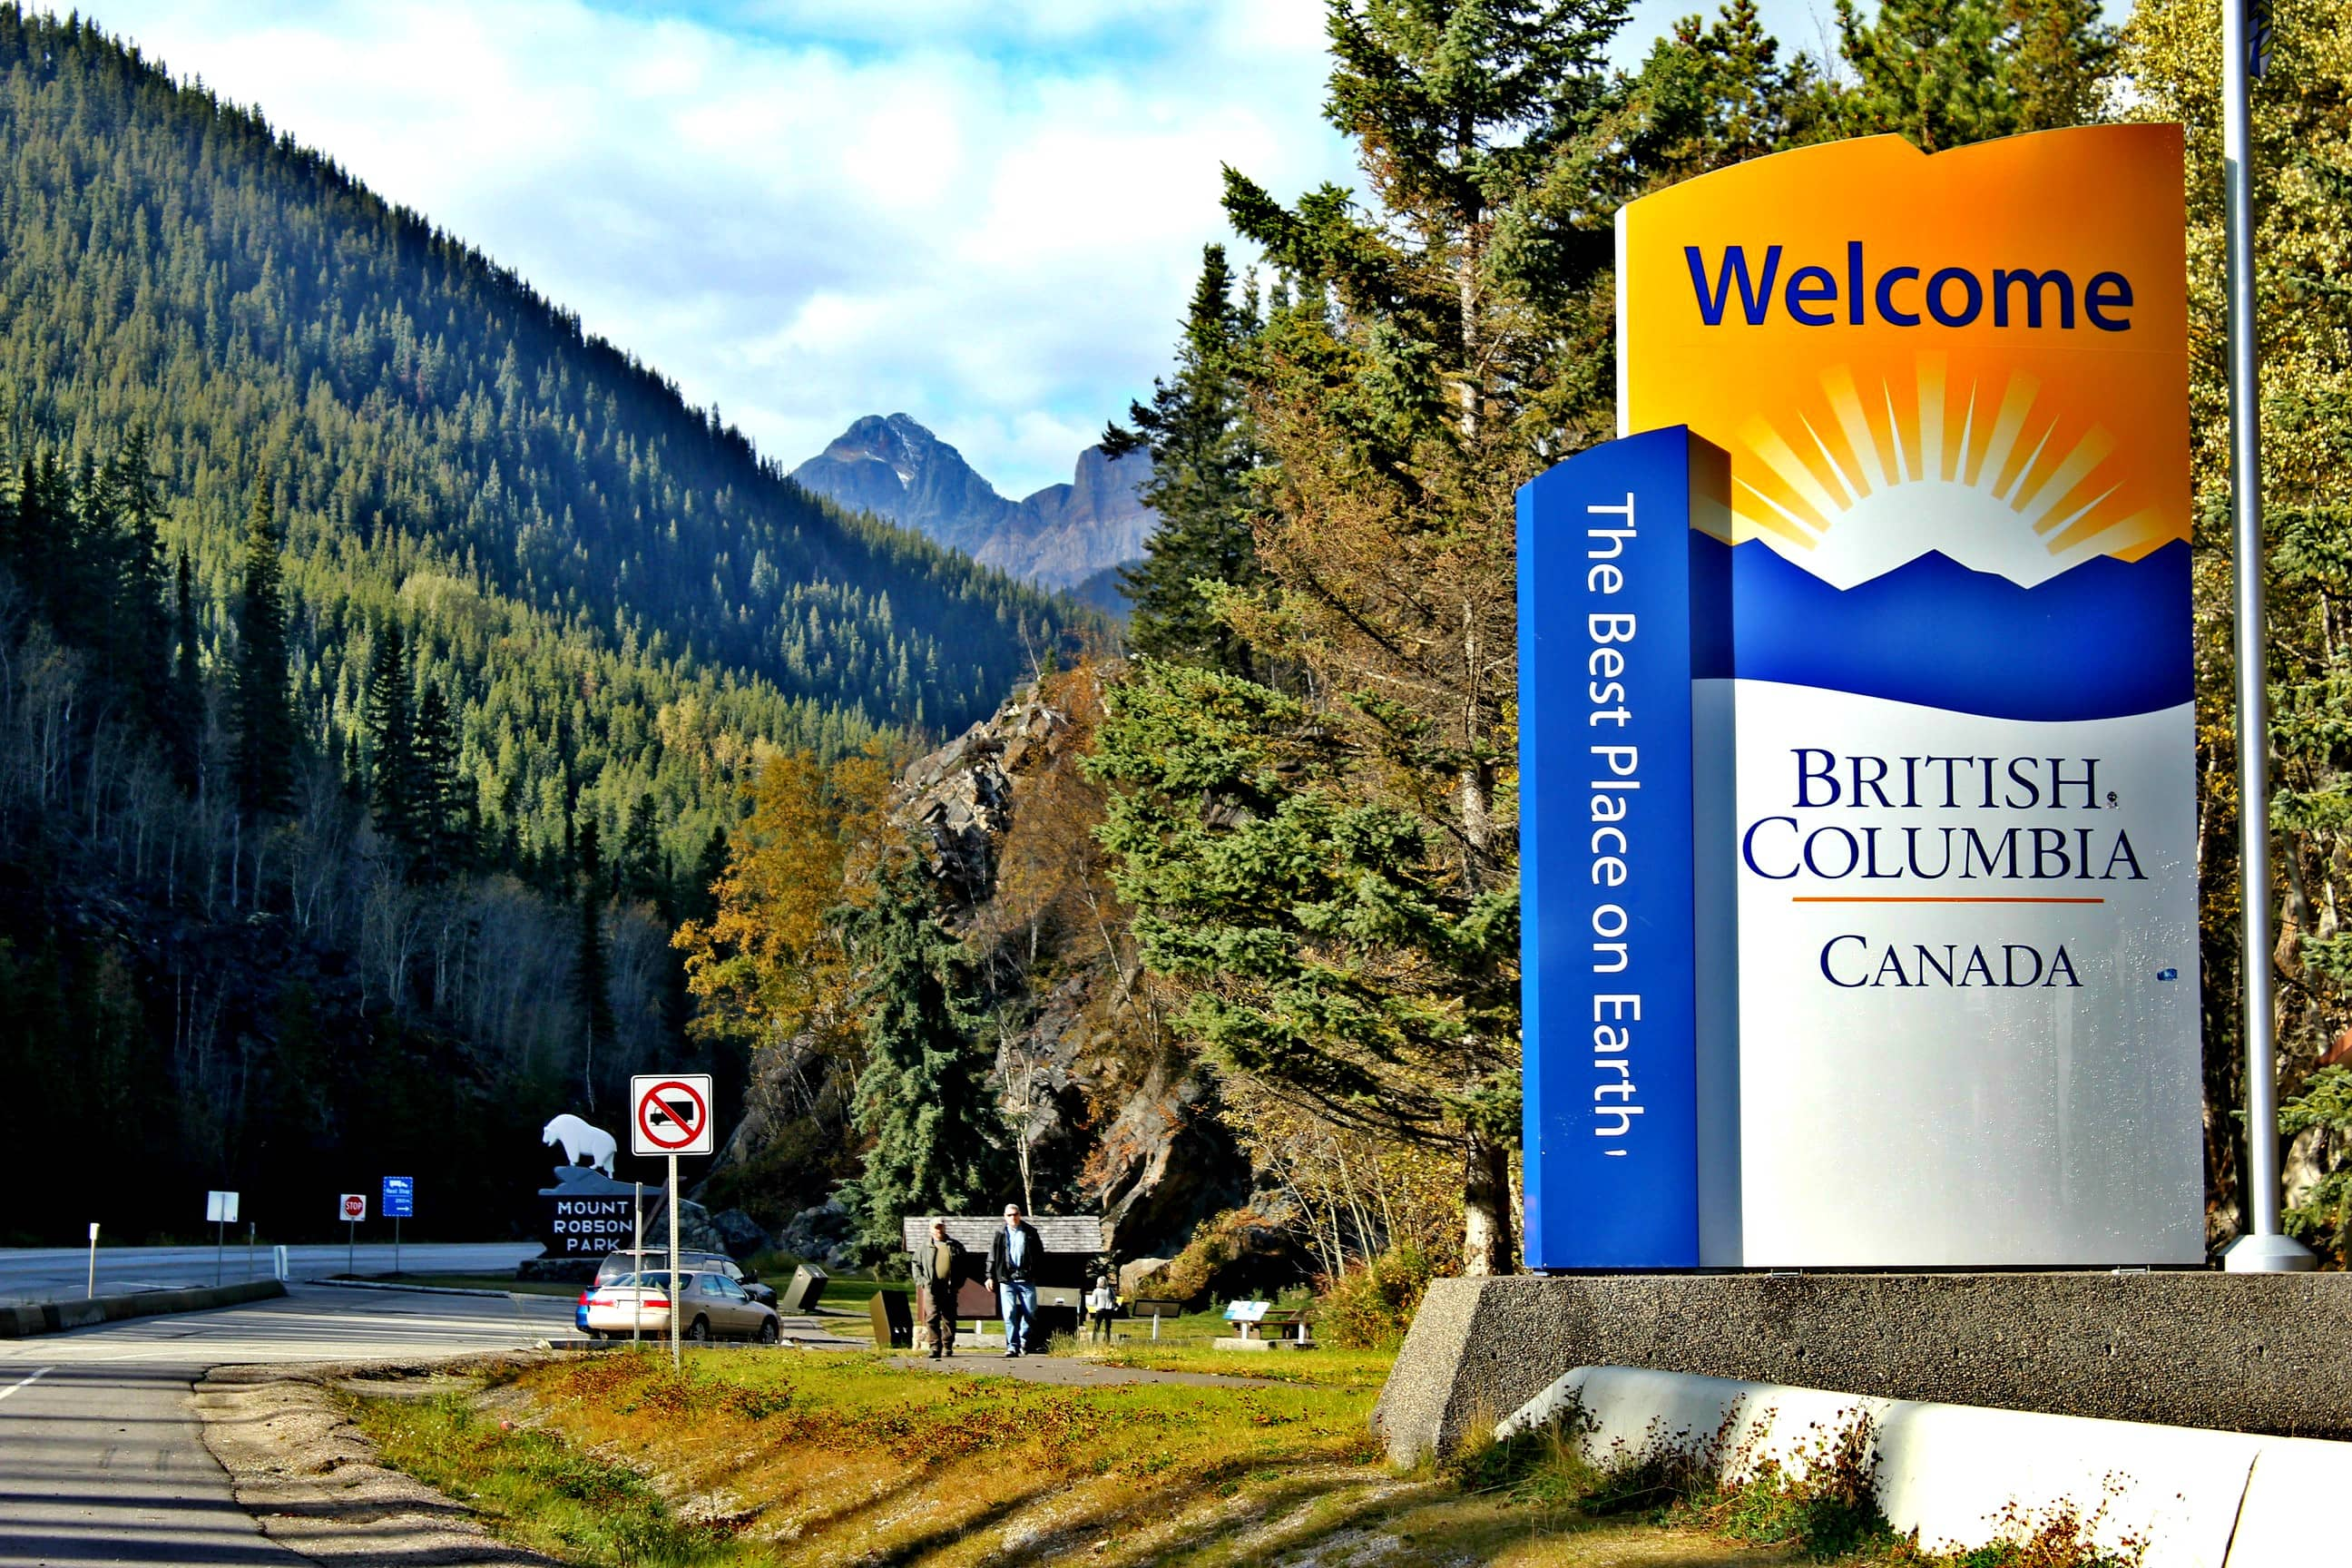 British-Columbia-welcome